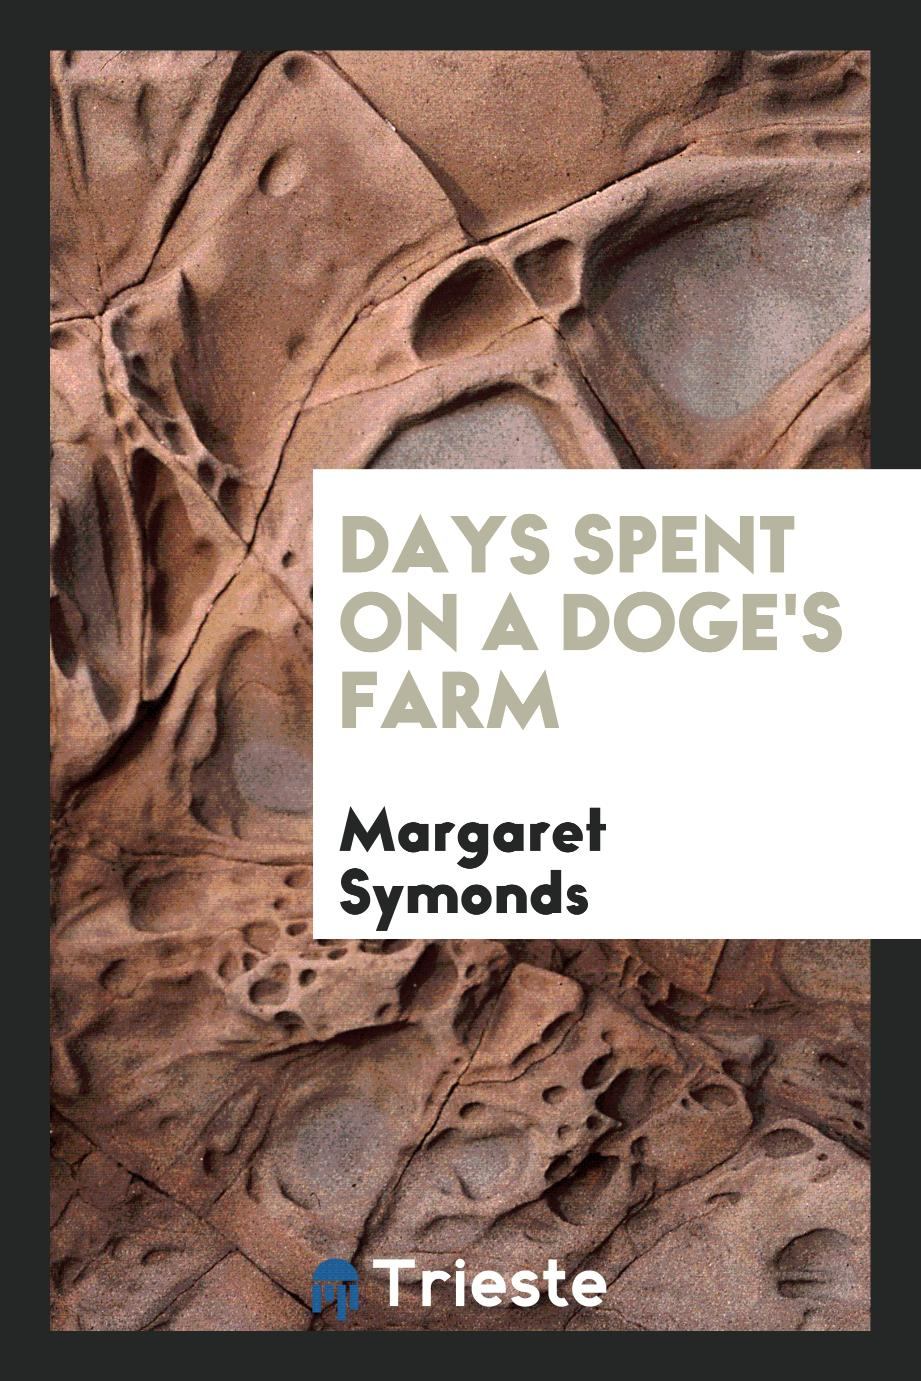 Days spent on a doge's farm